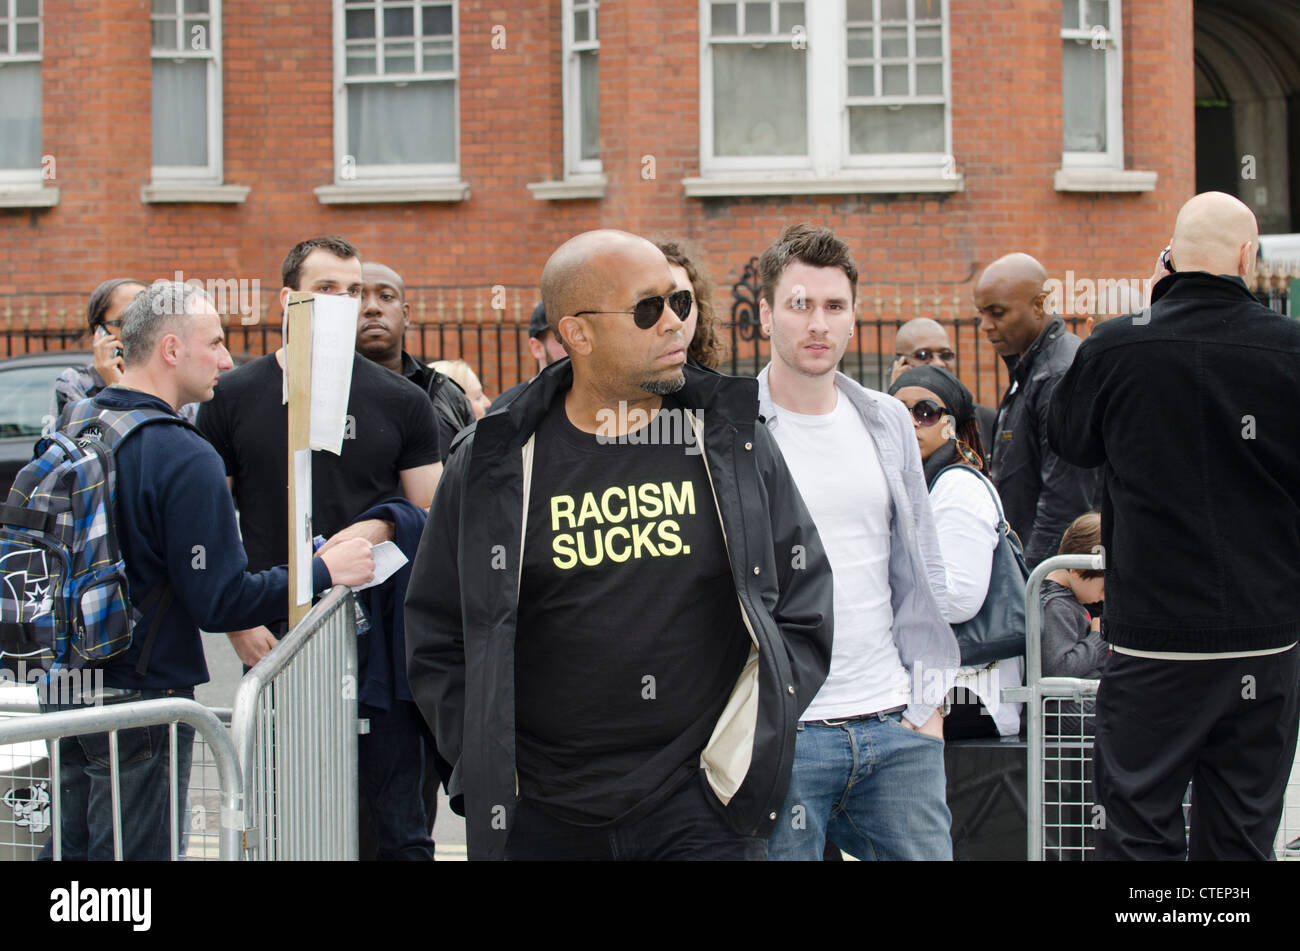 Racism Suck T shirt on guest at The Art of Rap film premiere Hammersmith Apollo, London  Uk - Stock Image